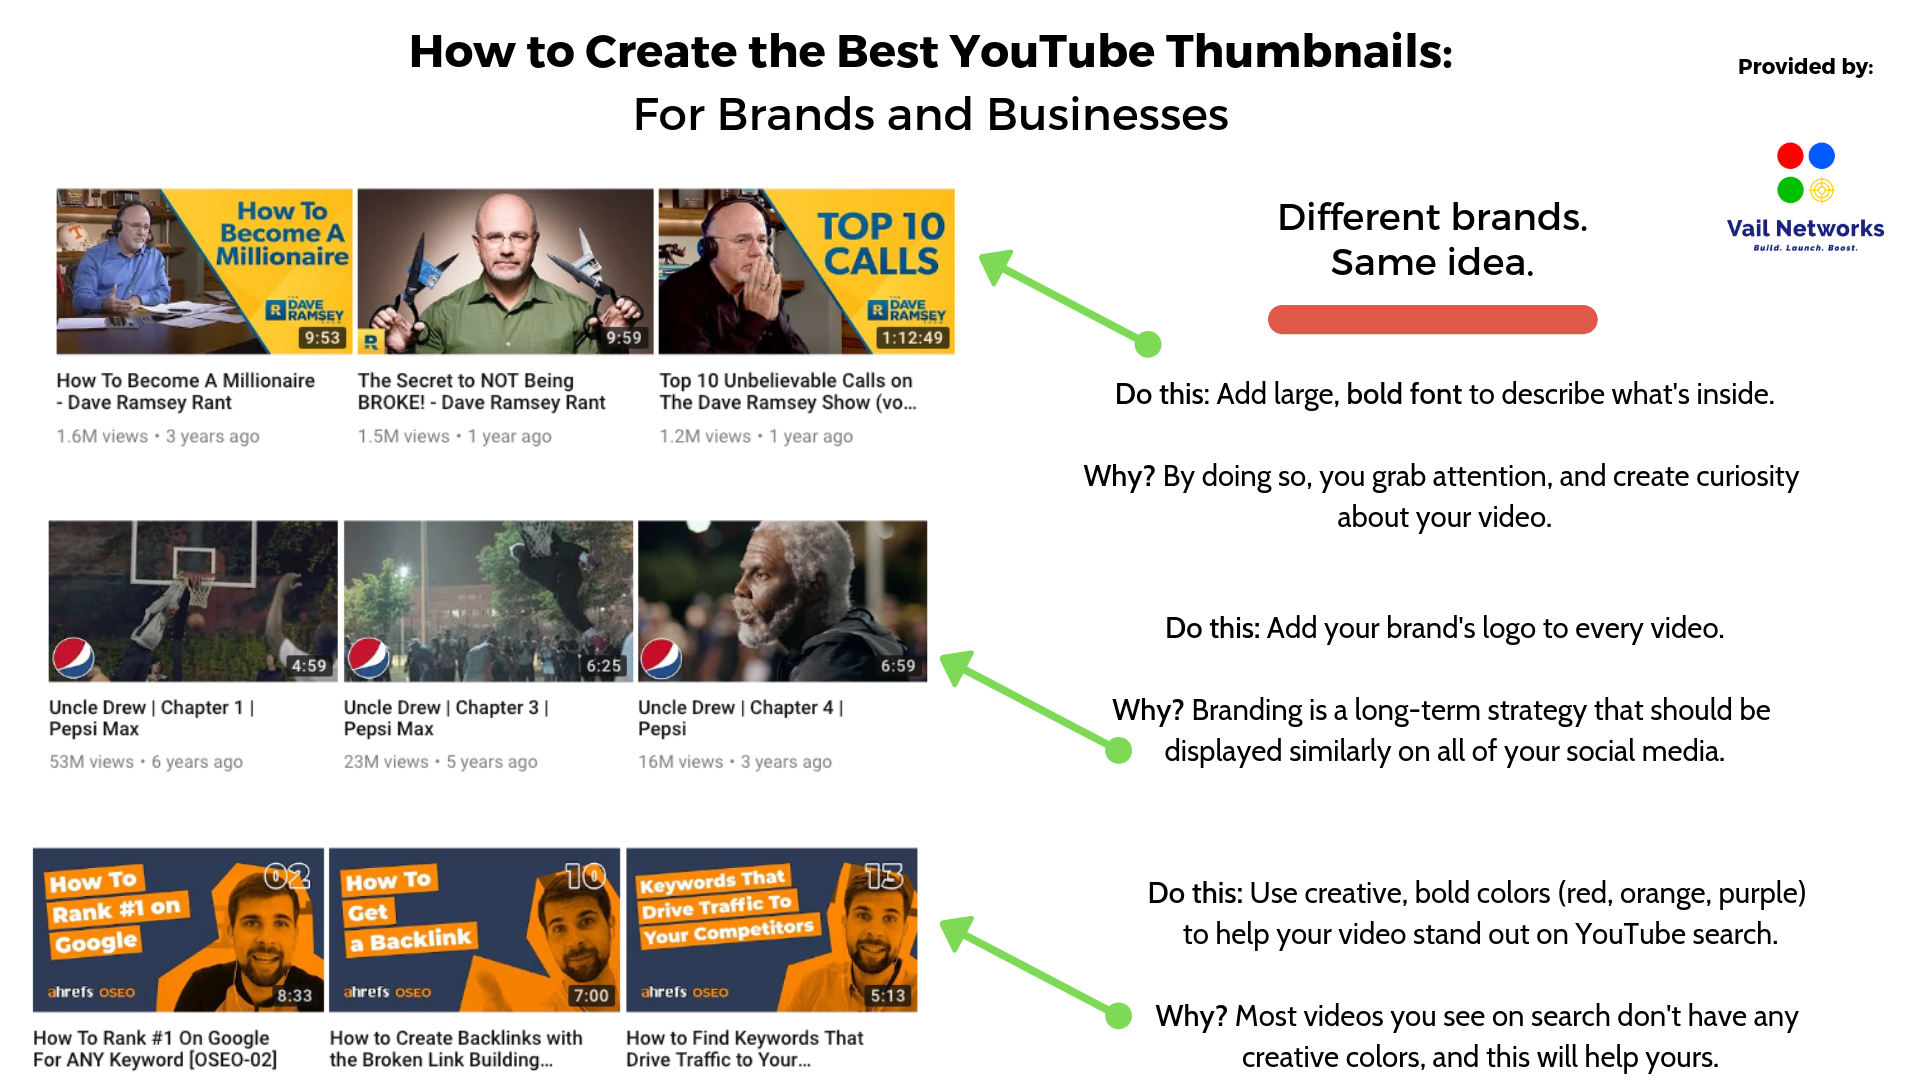 How to create the best youtube thumbnails and graphics.